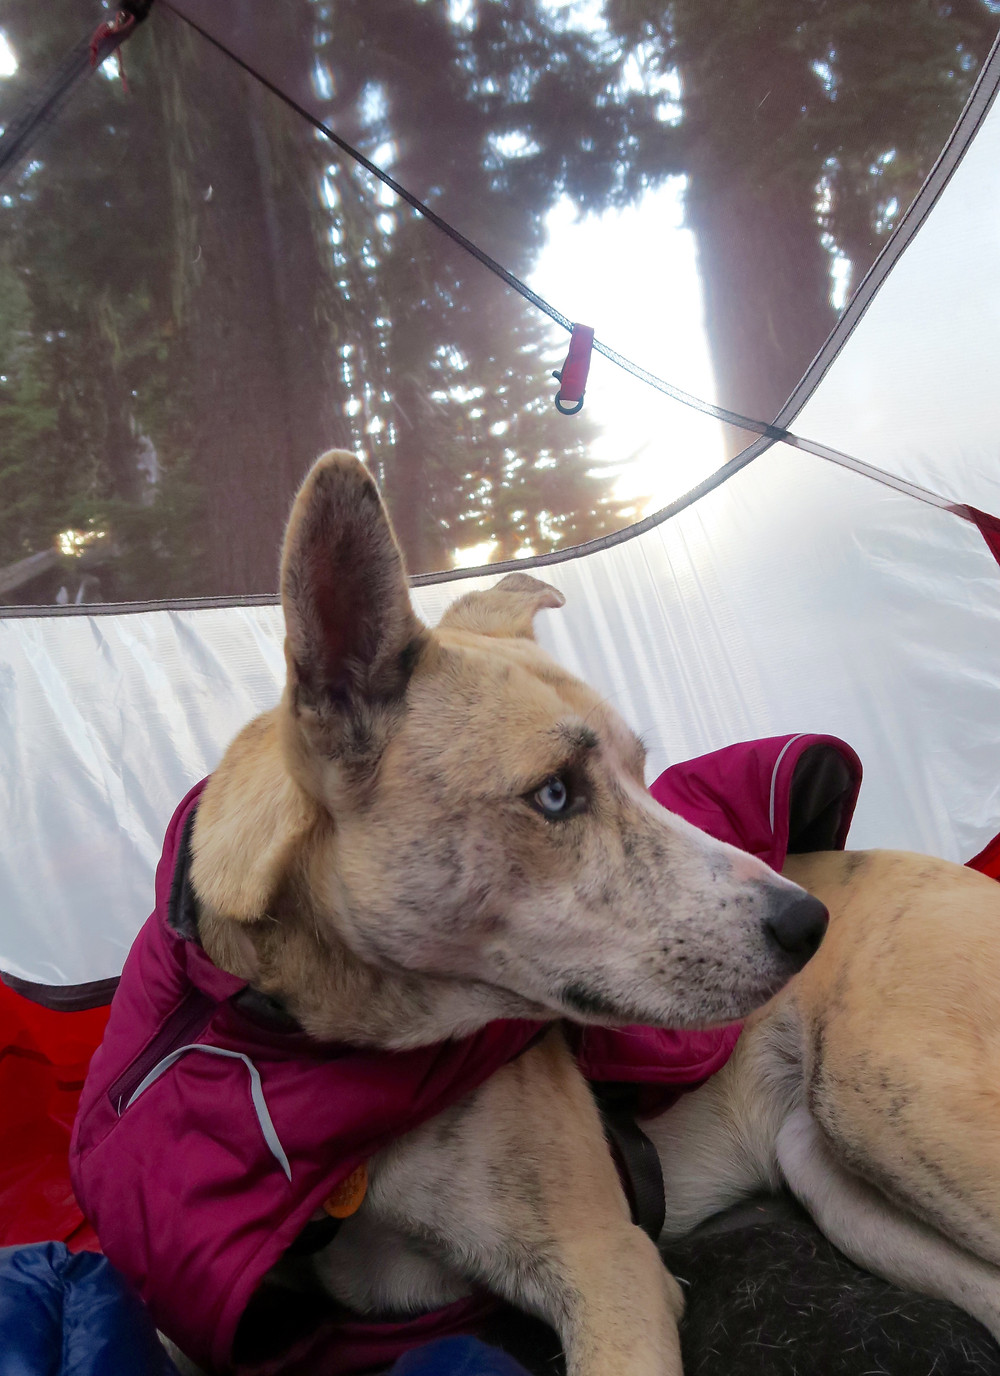 A dog wearing a purple coat sits in a camping tent with blurred pine trees in the background.